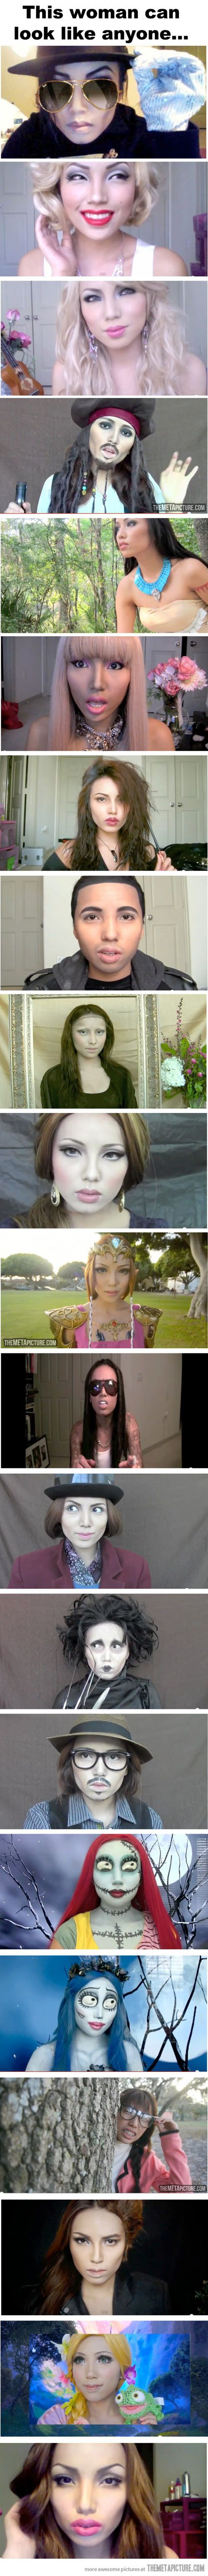 The incredible power of makeup… Incase you didnt know, her youtube is dope211 Aka promise phan